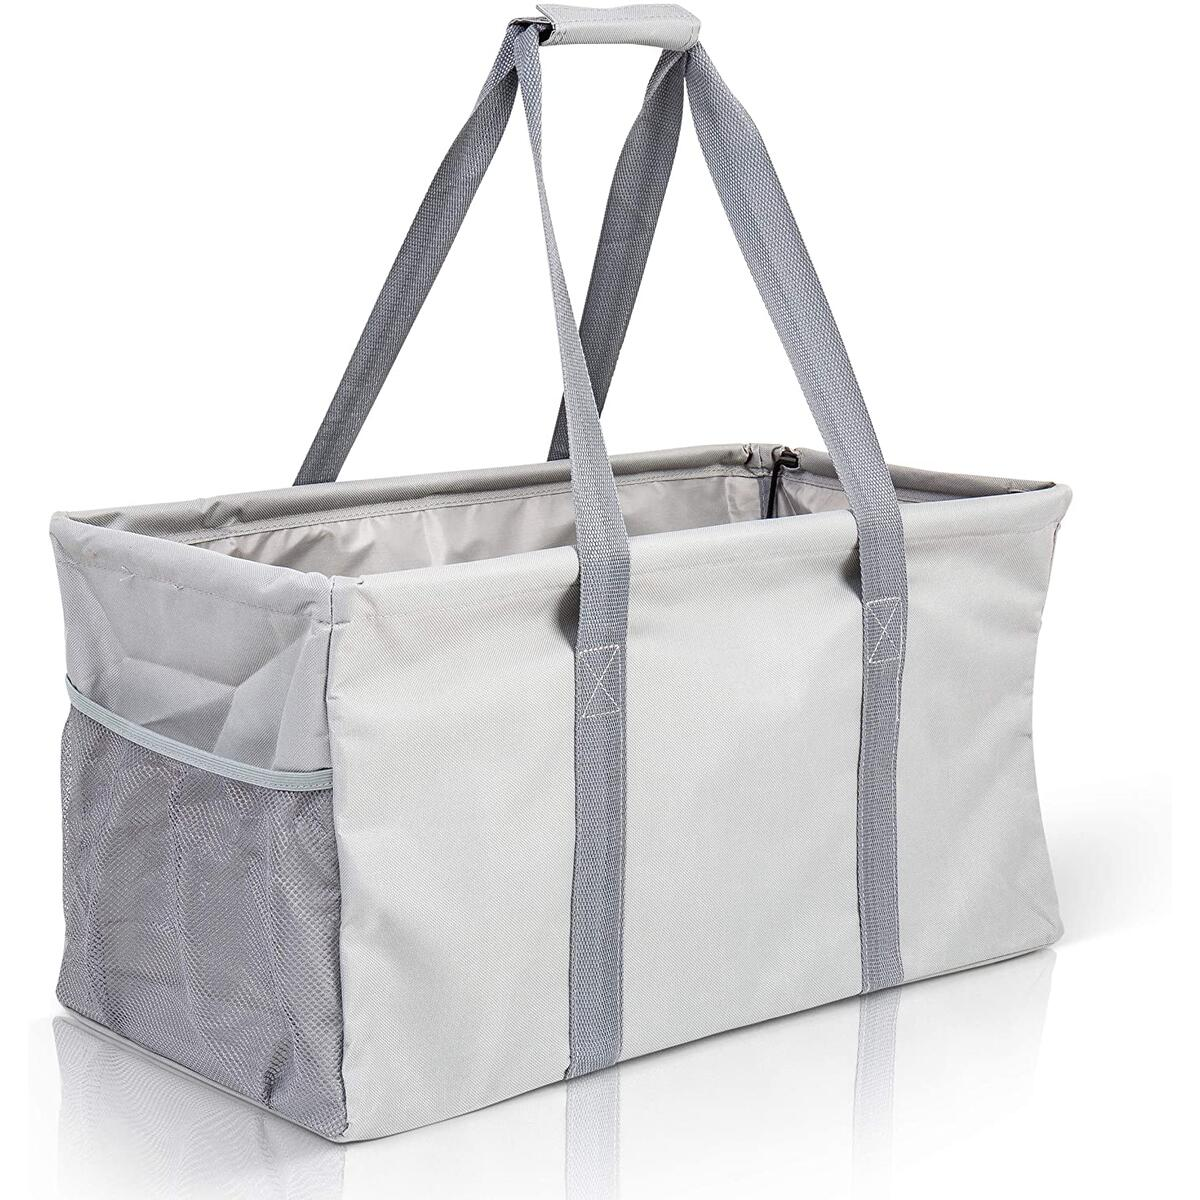 Extra Large Utility Tote Bag - Gray